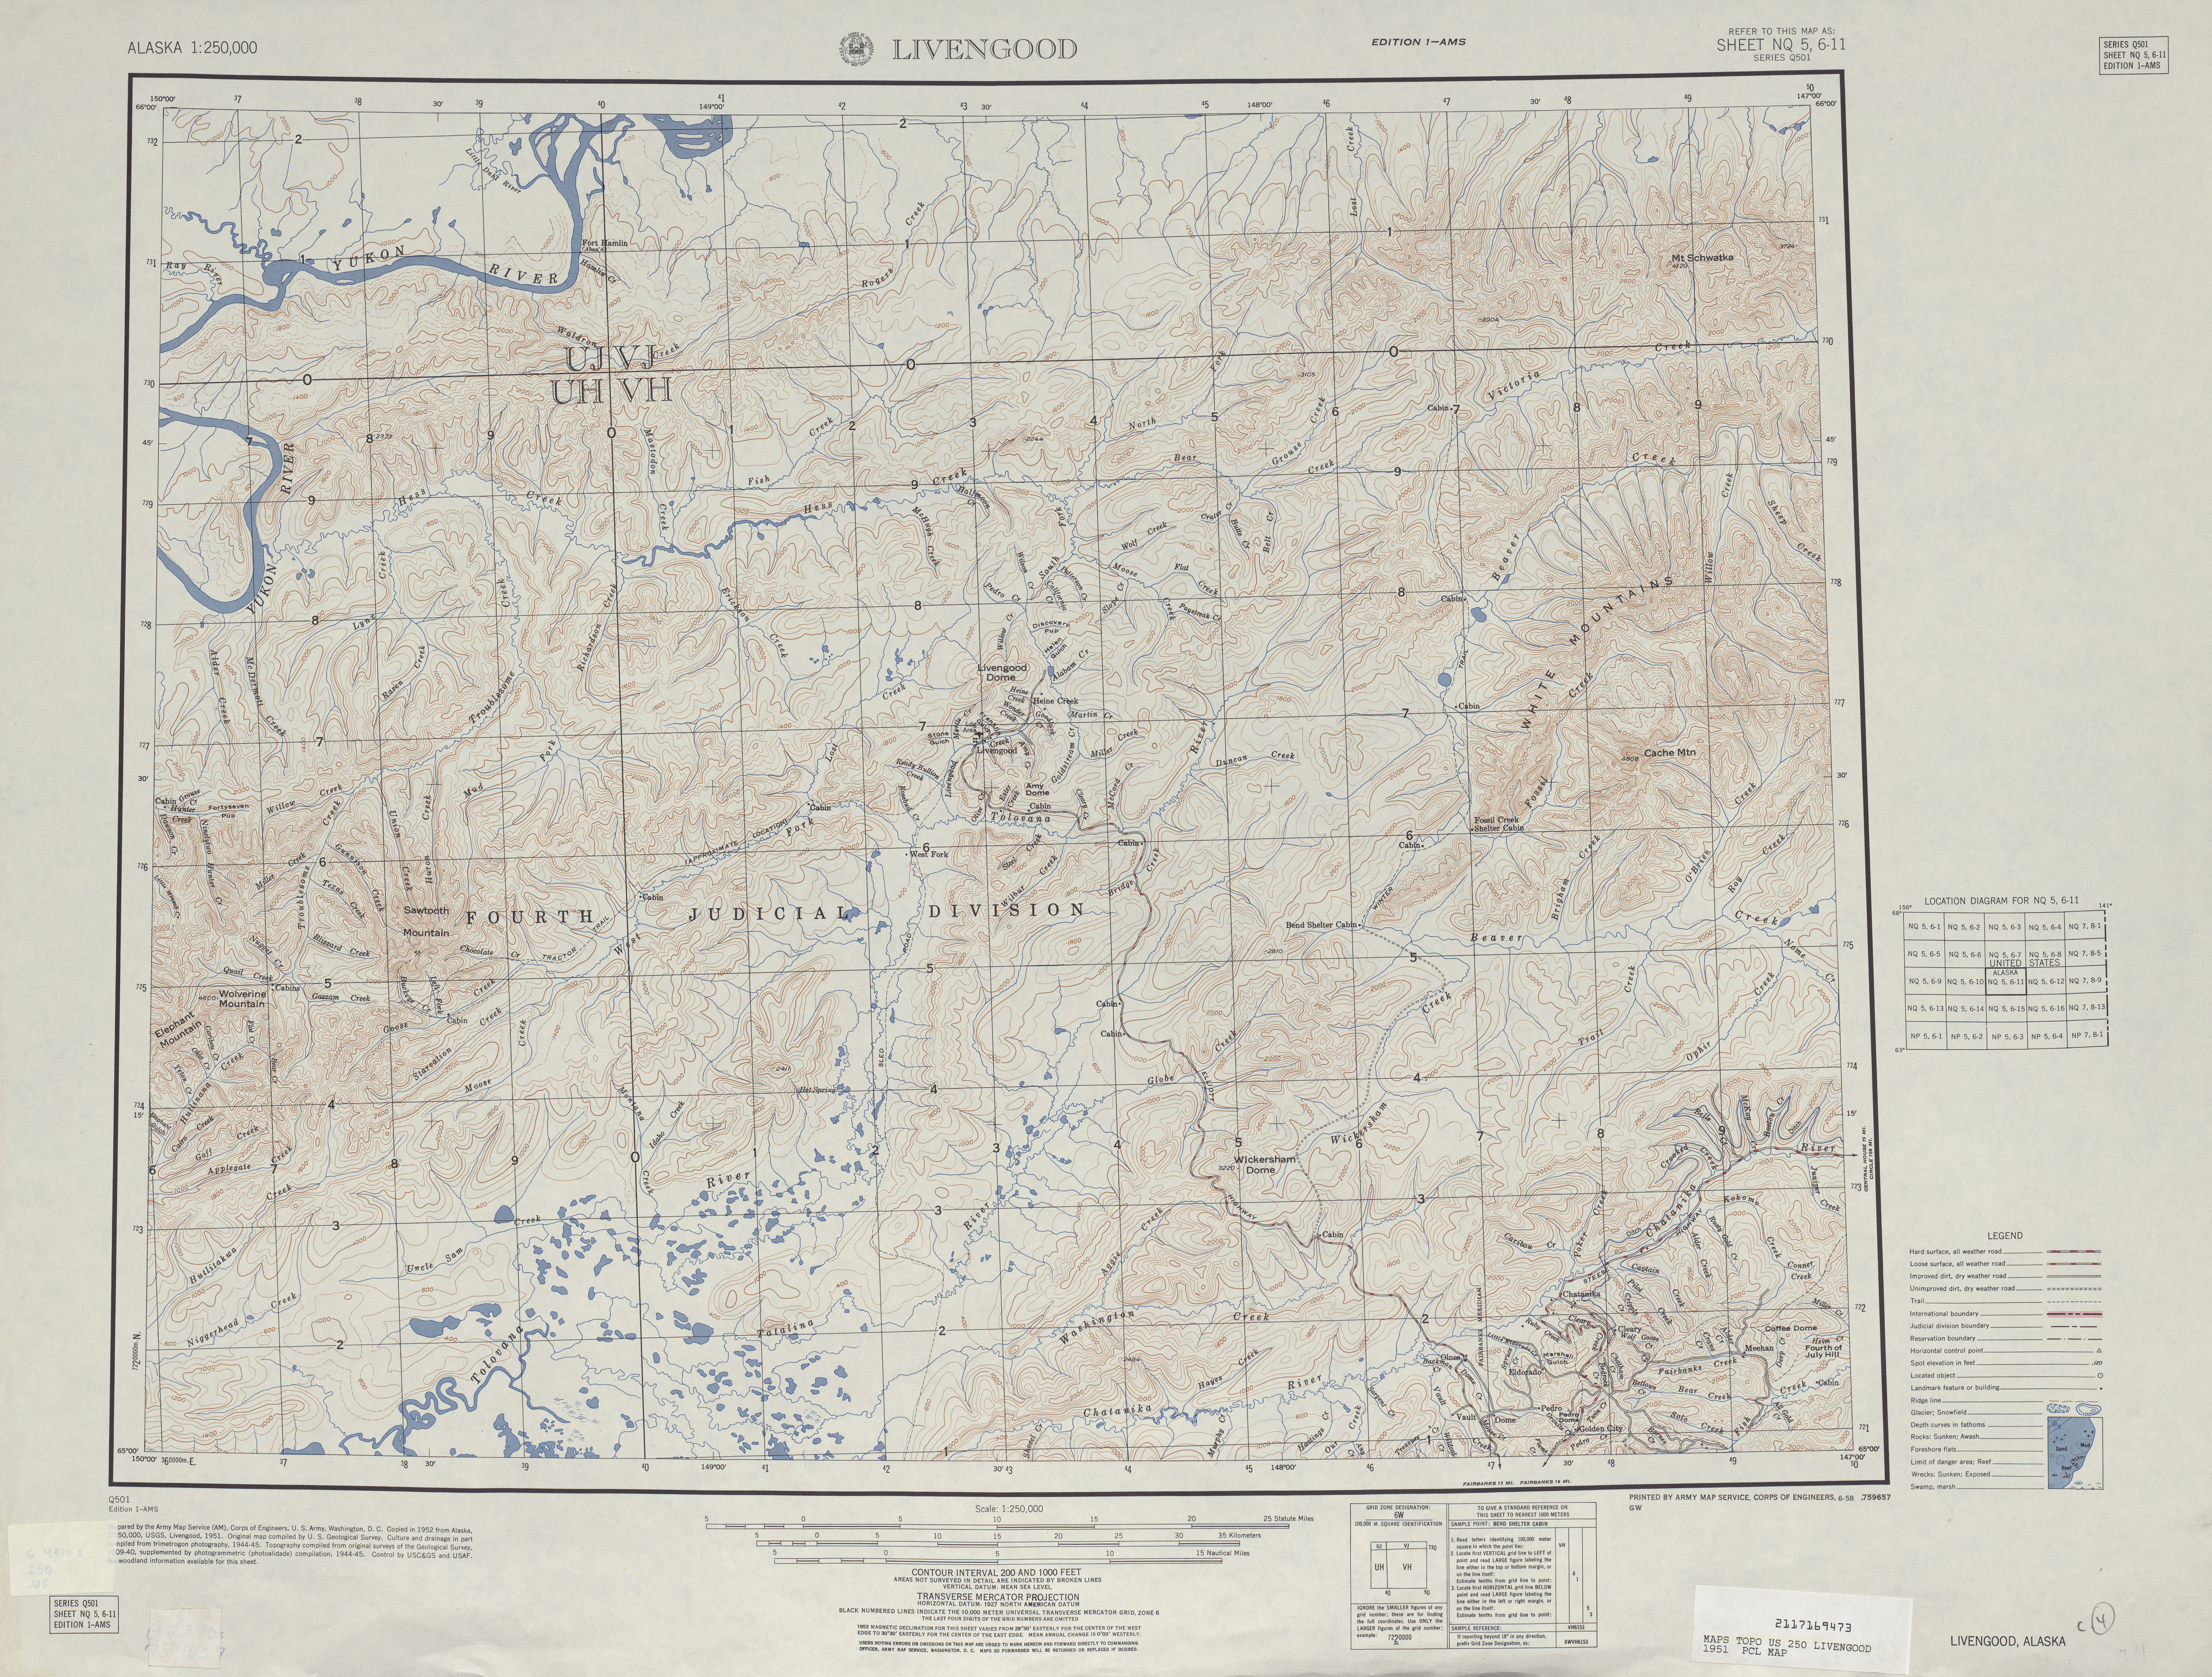 Livengood Topographic Map Sheet, United States 1951